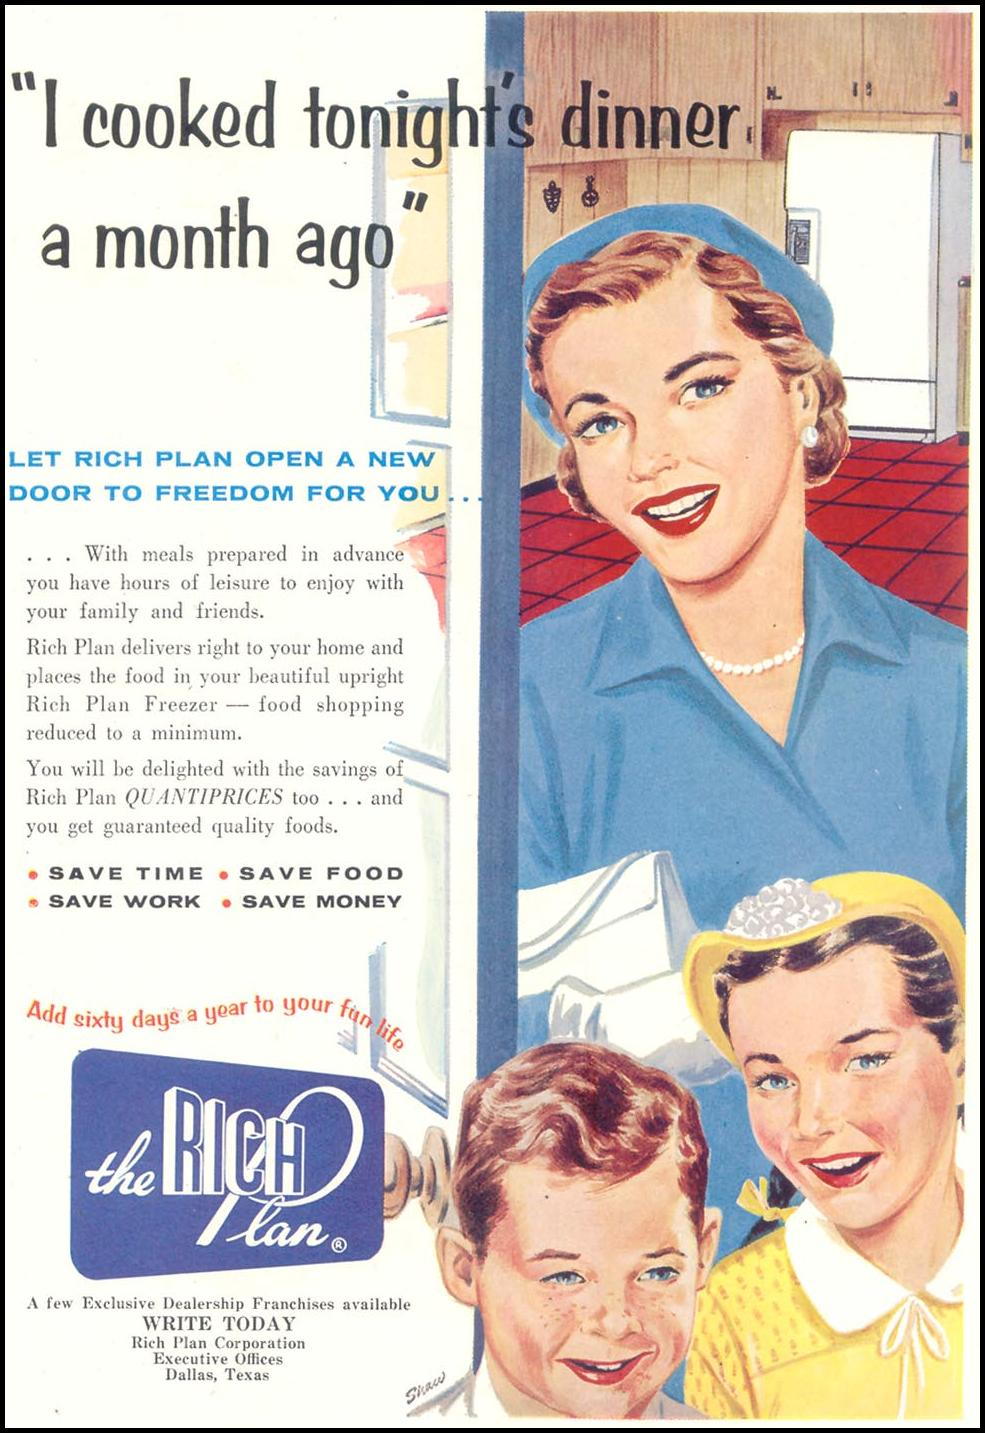 THE RICH PLAN SATURDAY EVENING POST 09/03/1955 p. 61